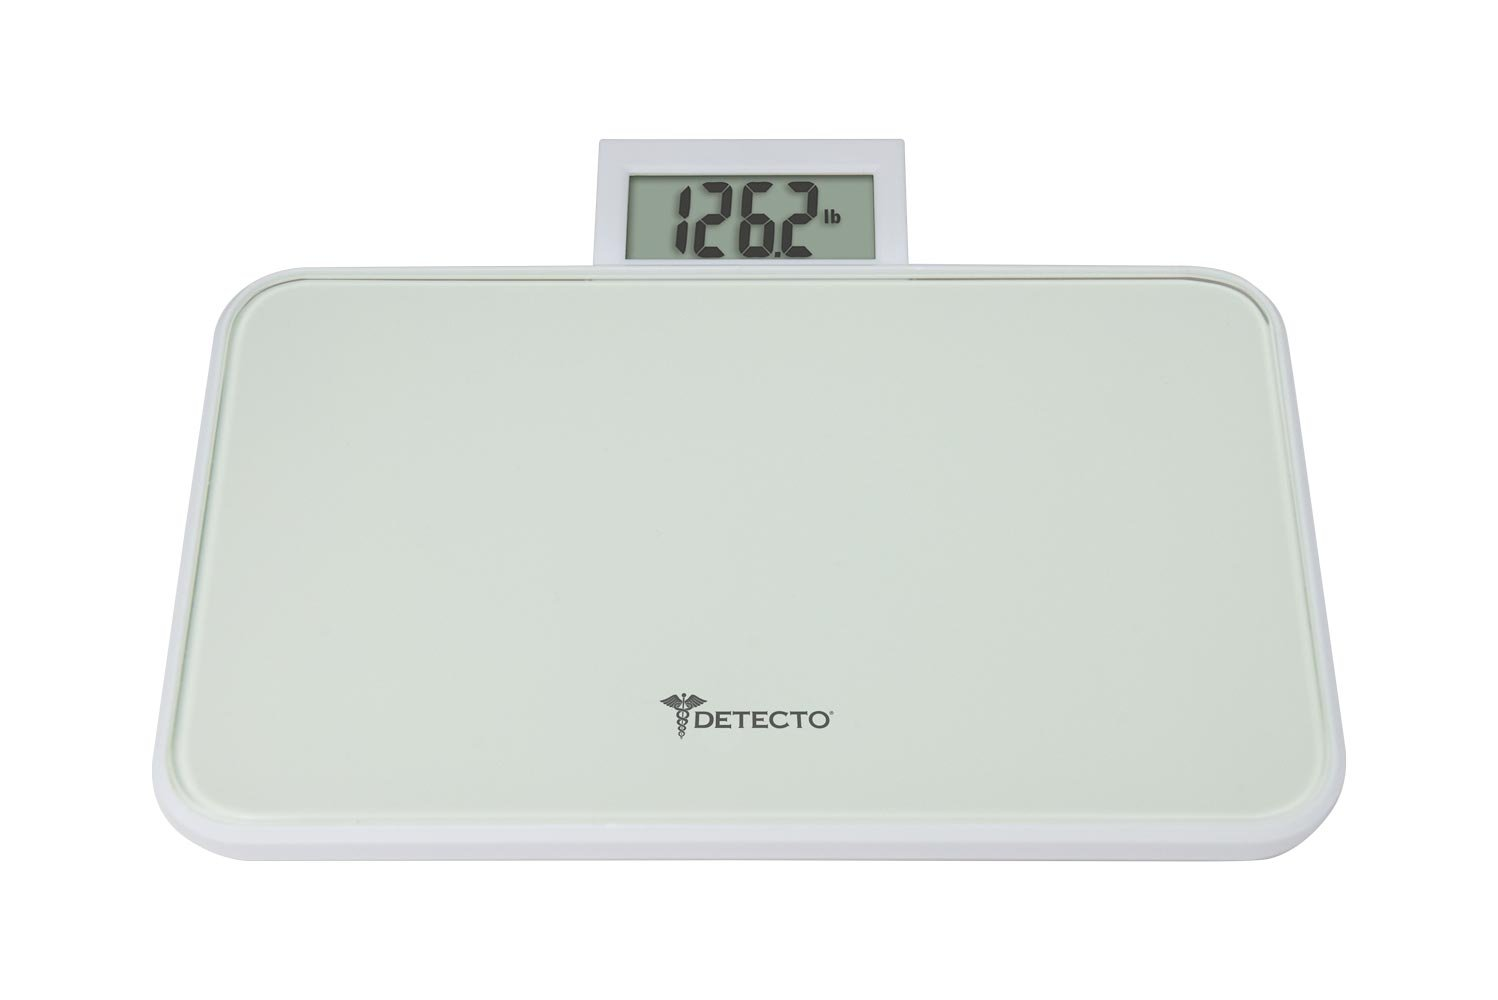 Detecto Small Platform Glass Digital Scale with Pop up Display